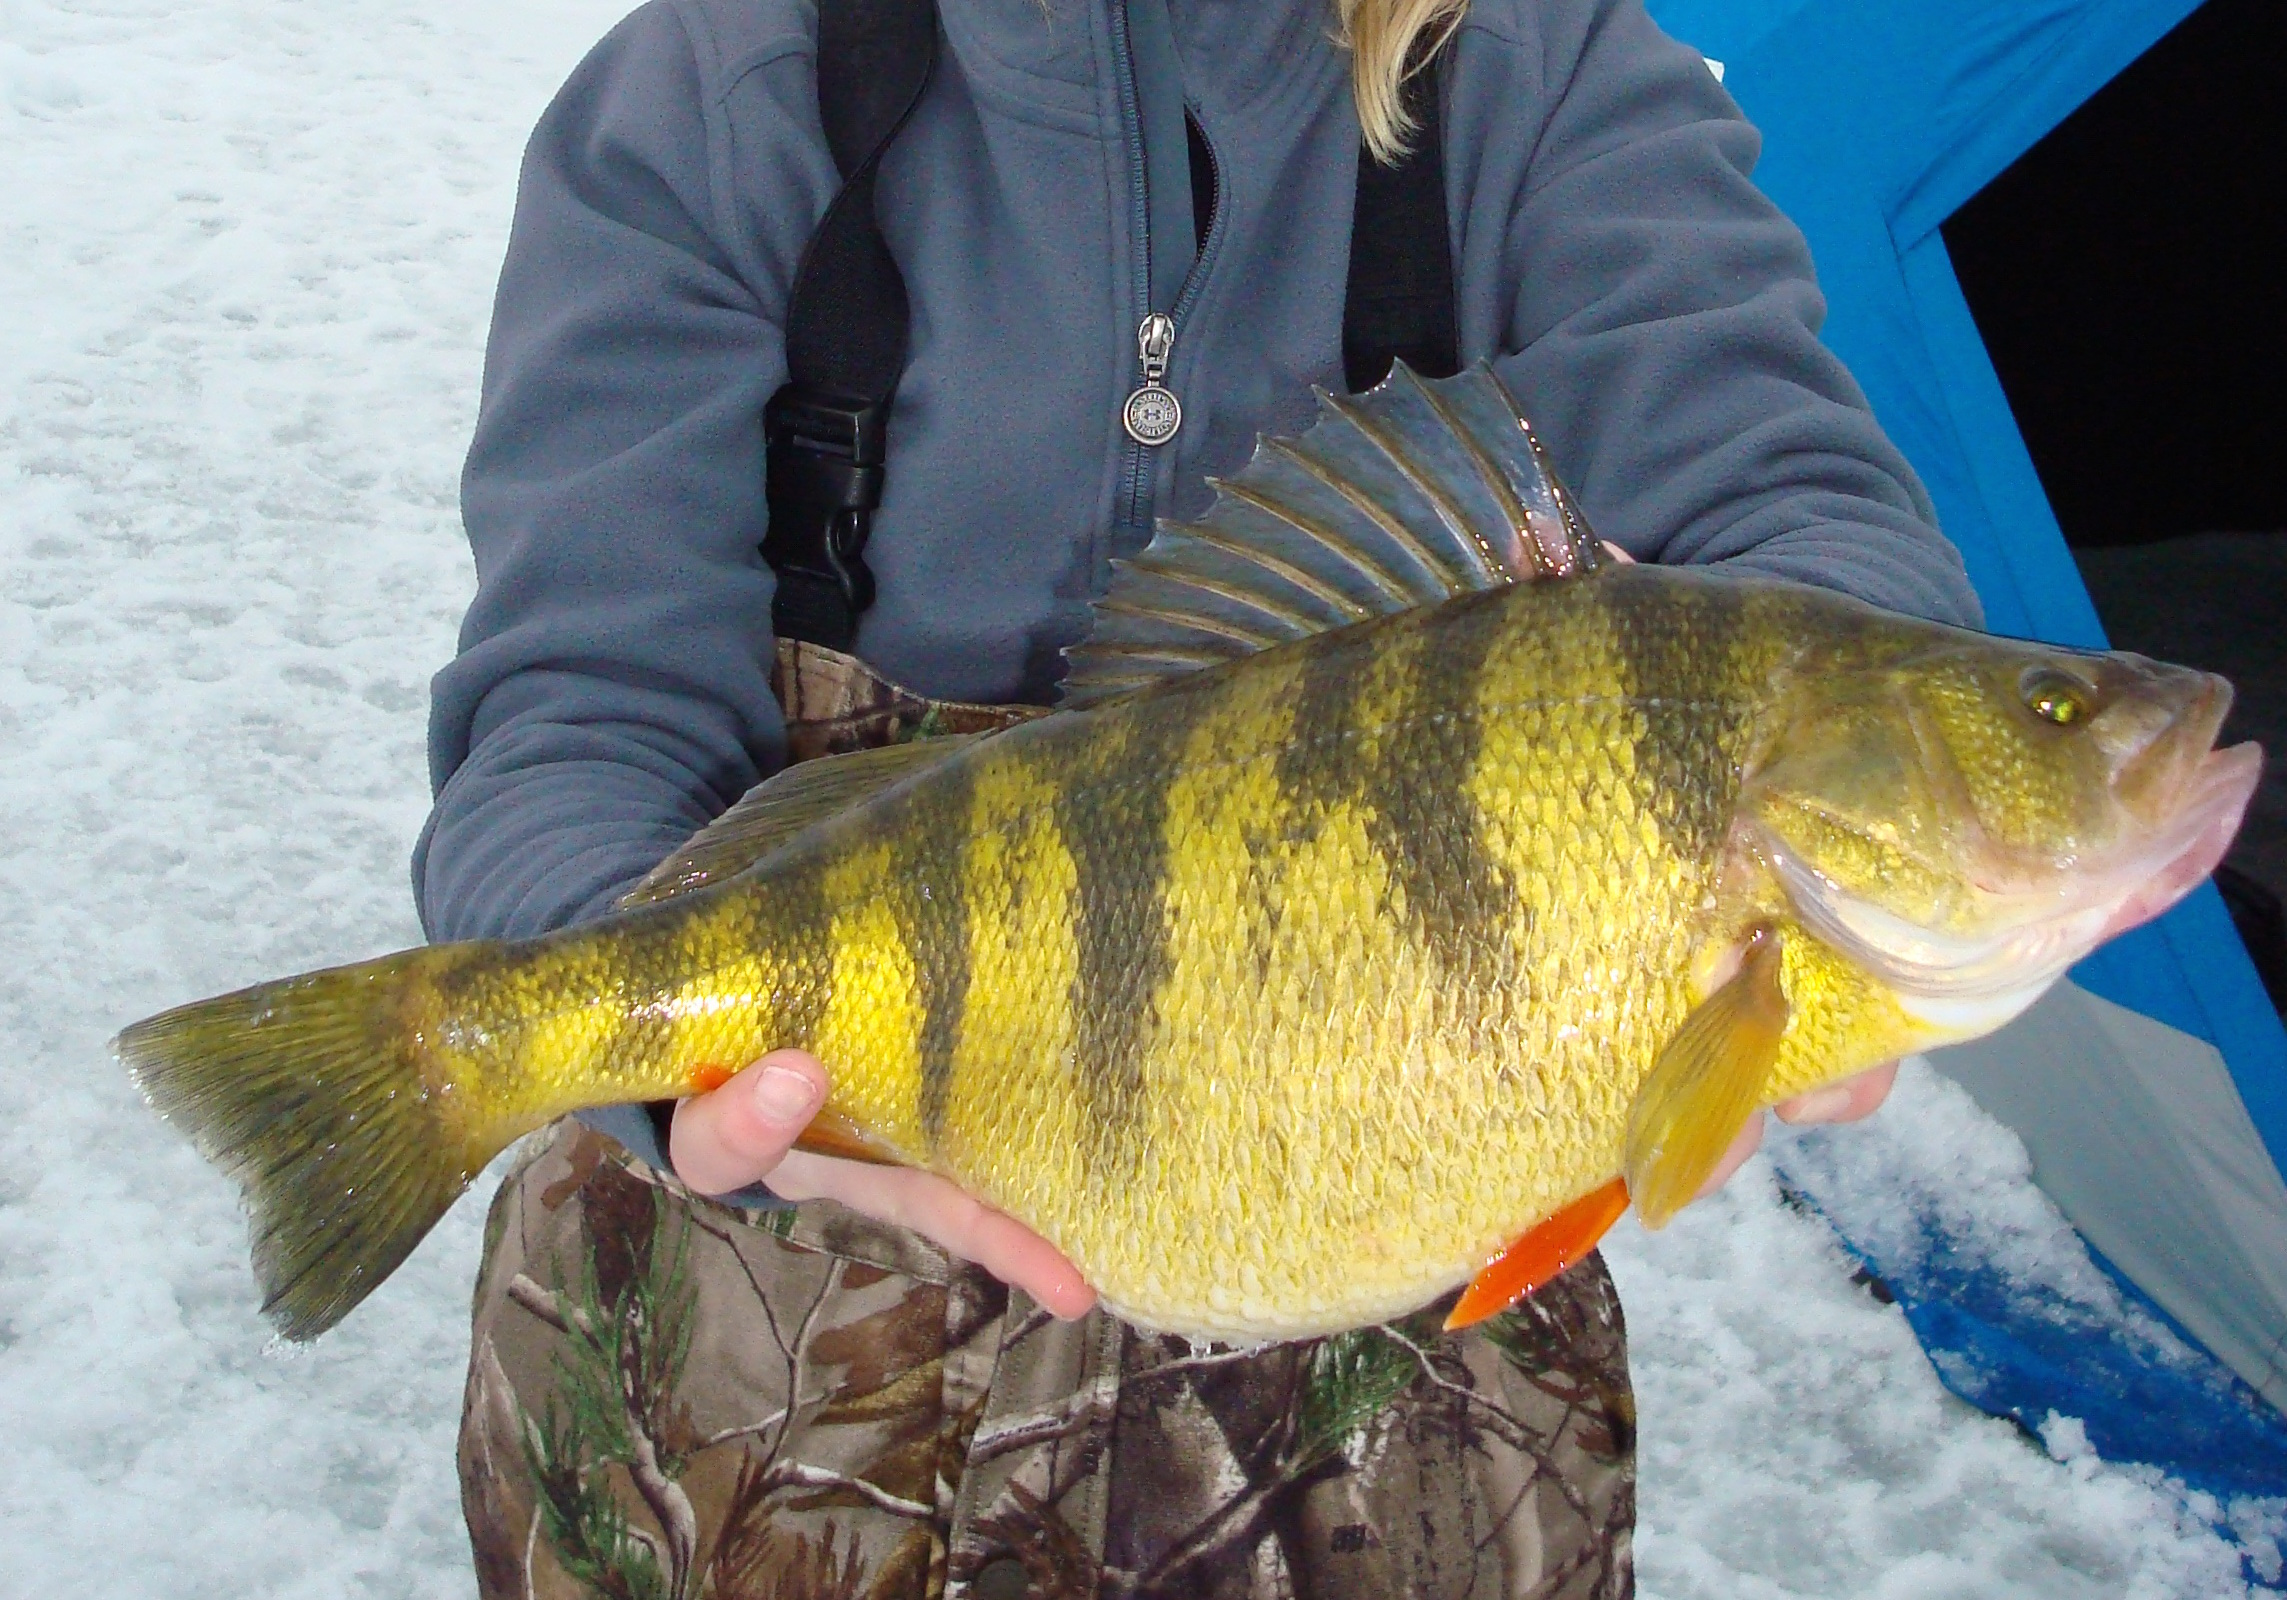 Idaho Girl Ices World Record Perch